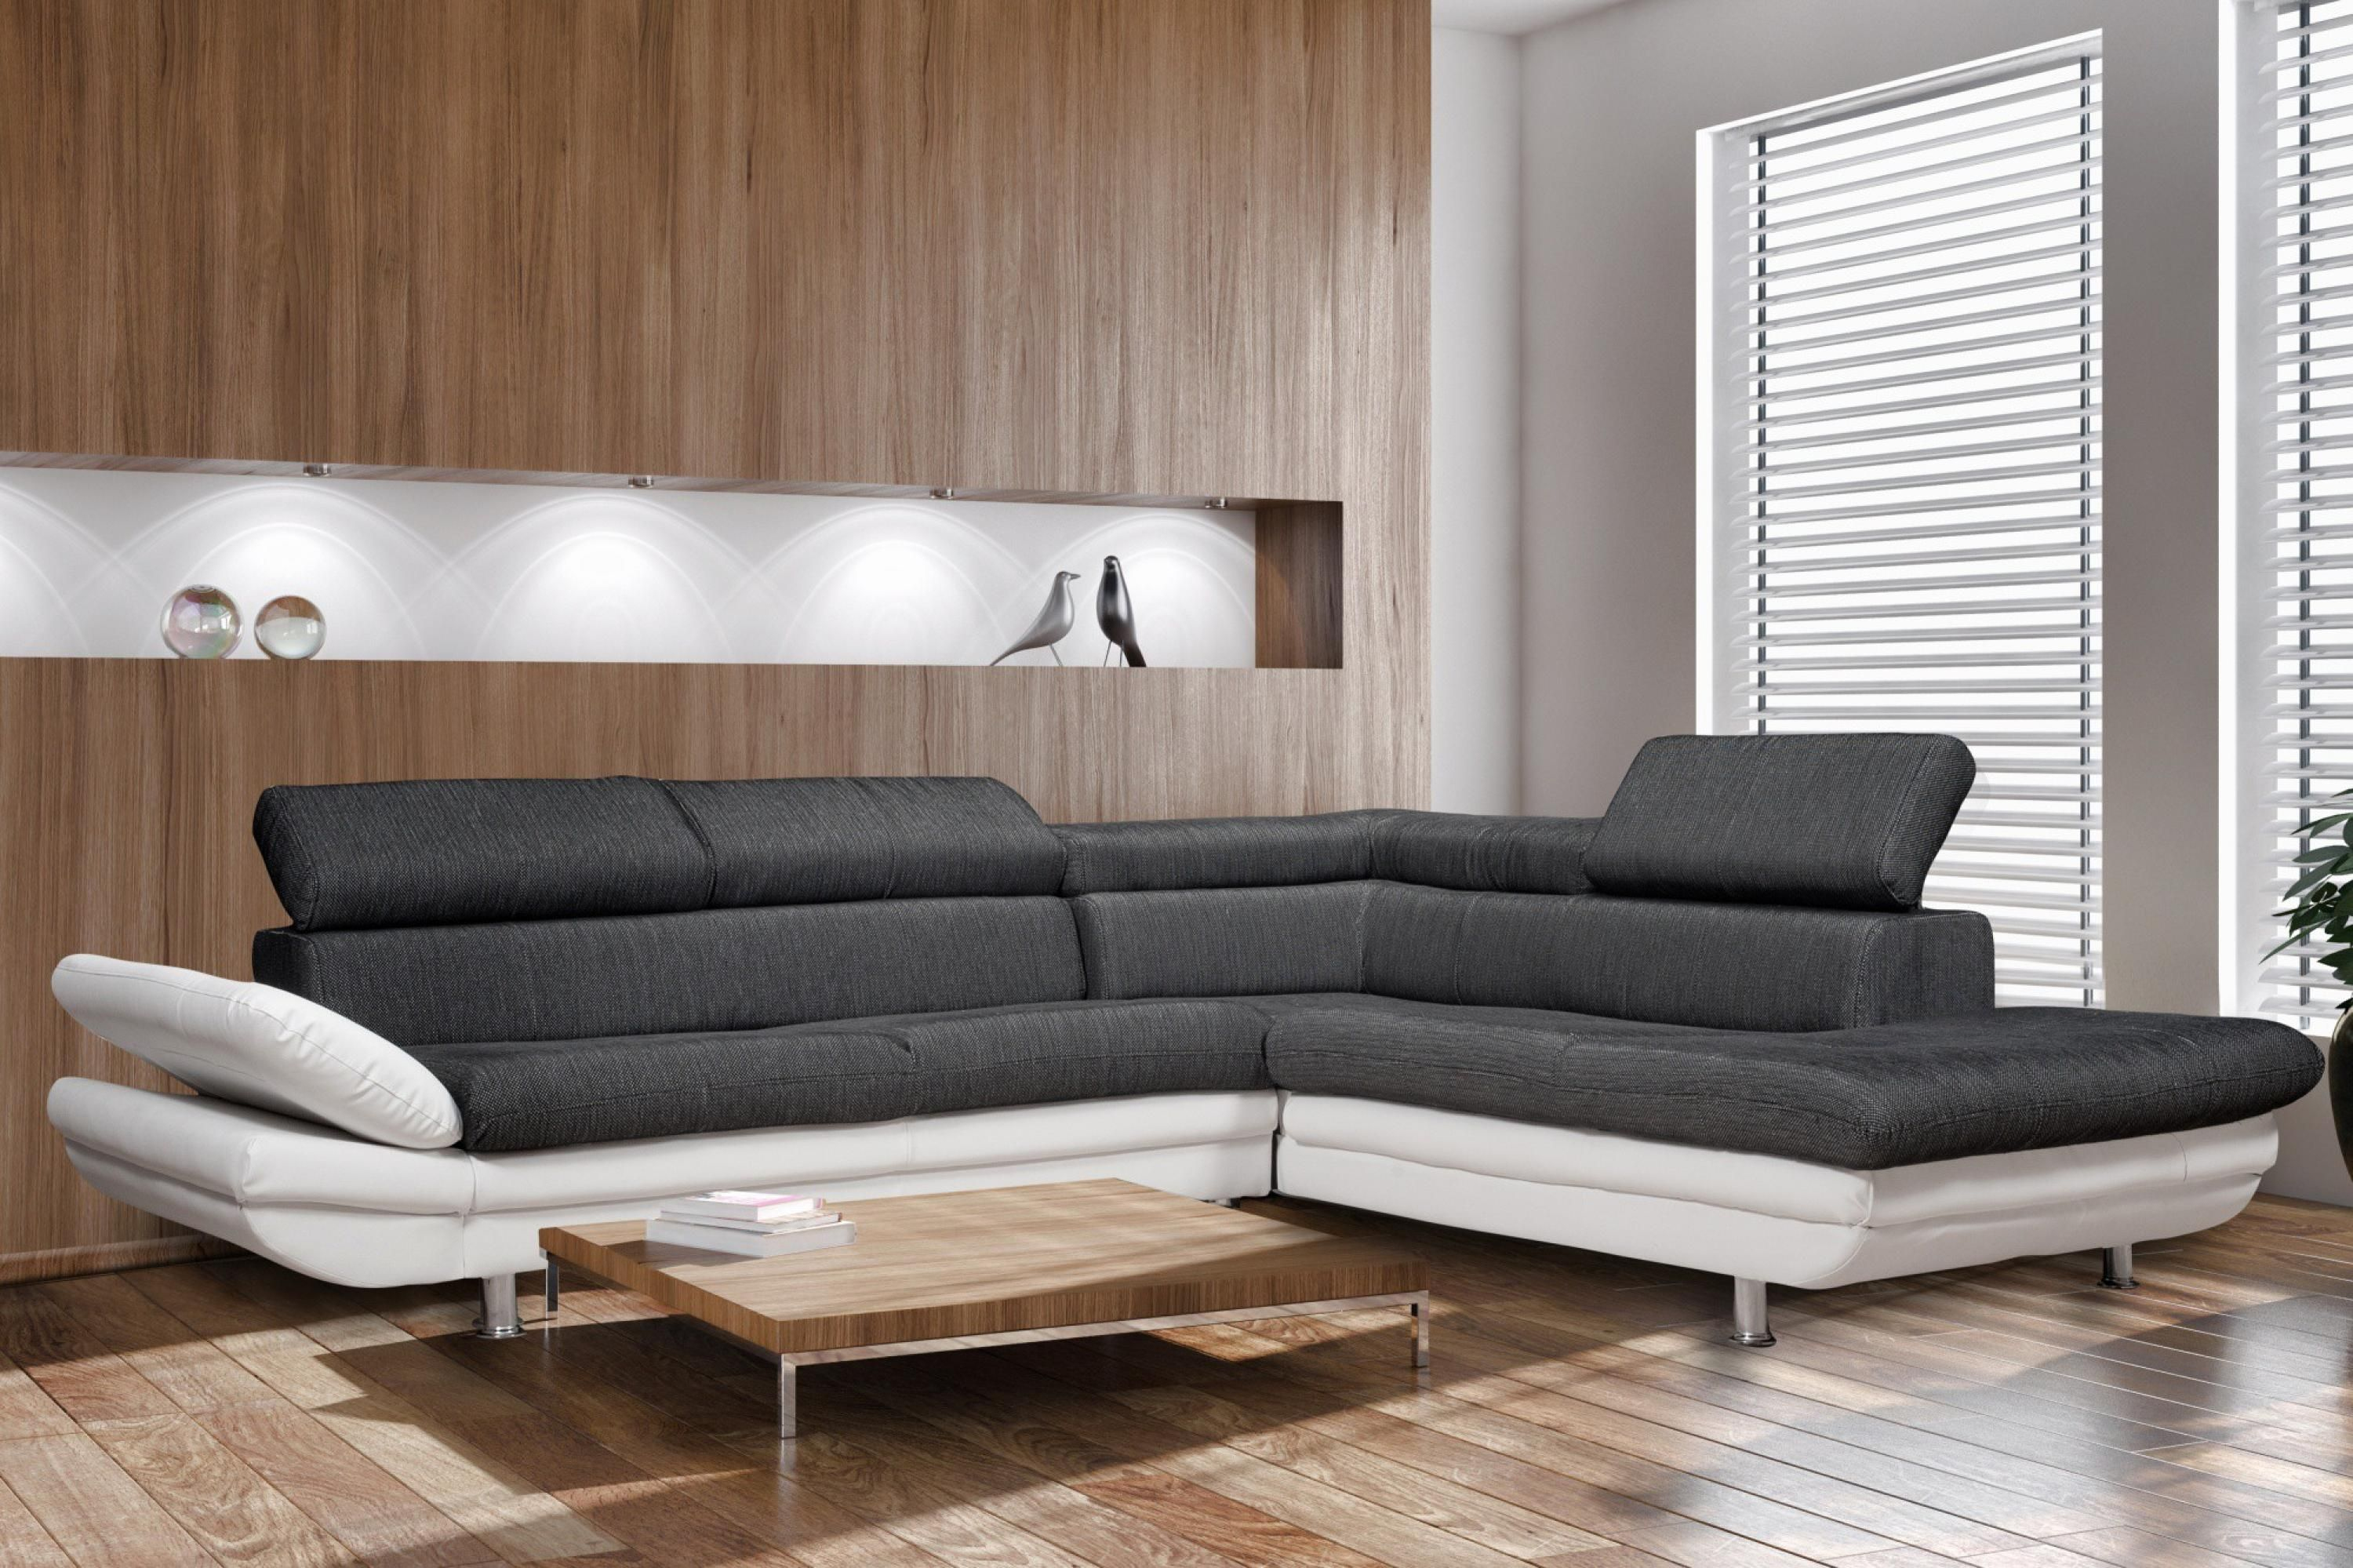 canape angle tissu conforama luxe photos canape convertible conforama. Black Bedroom Furniture Sets. Home Design Ideas